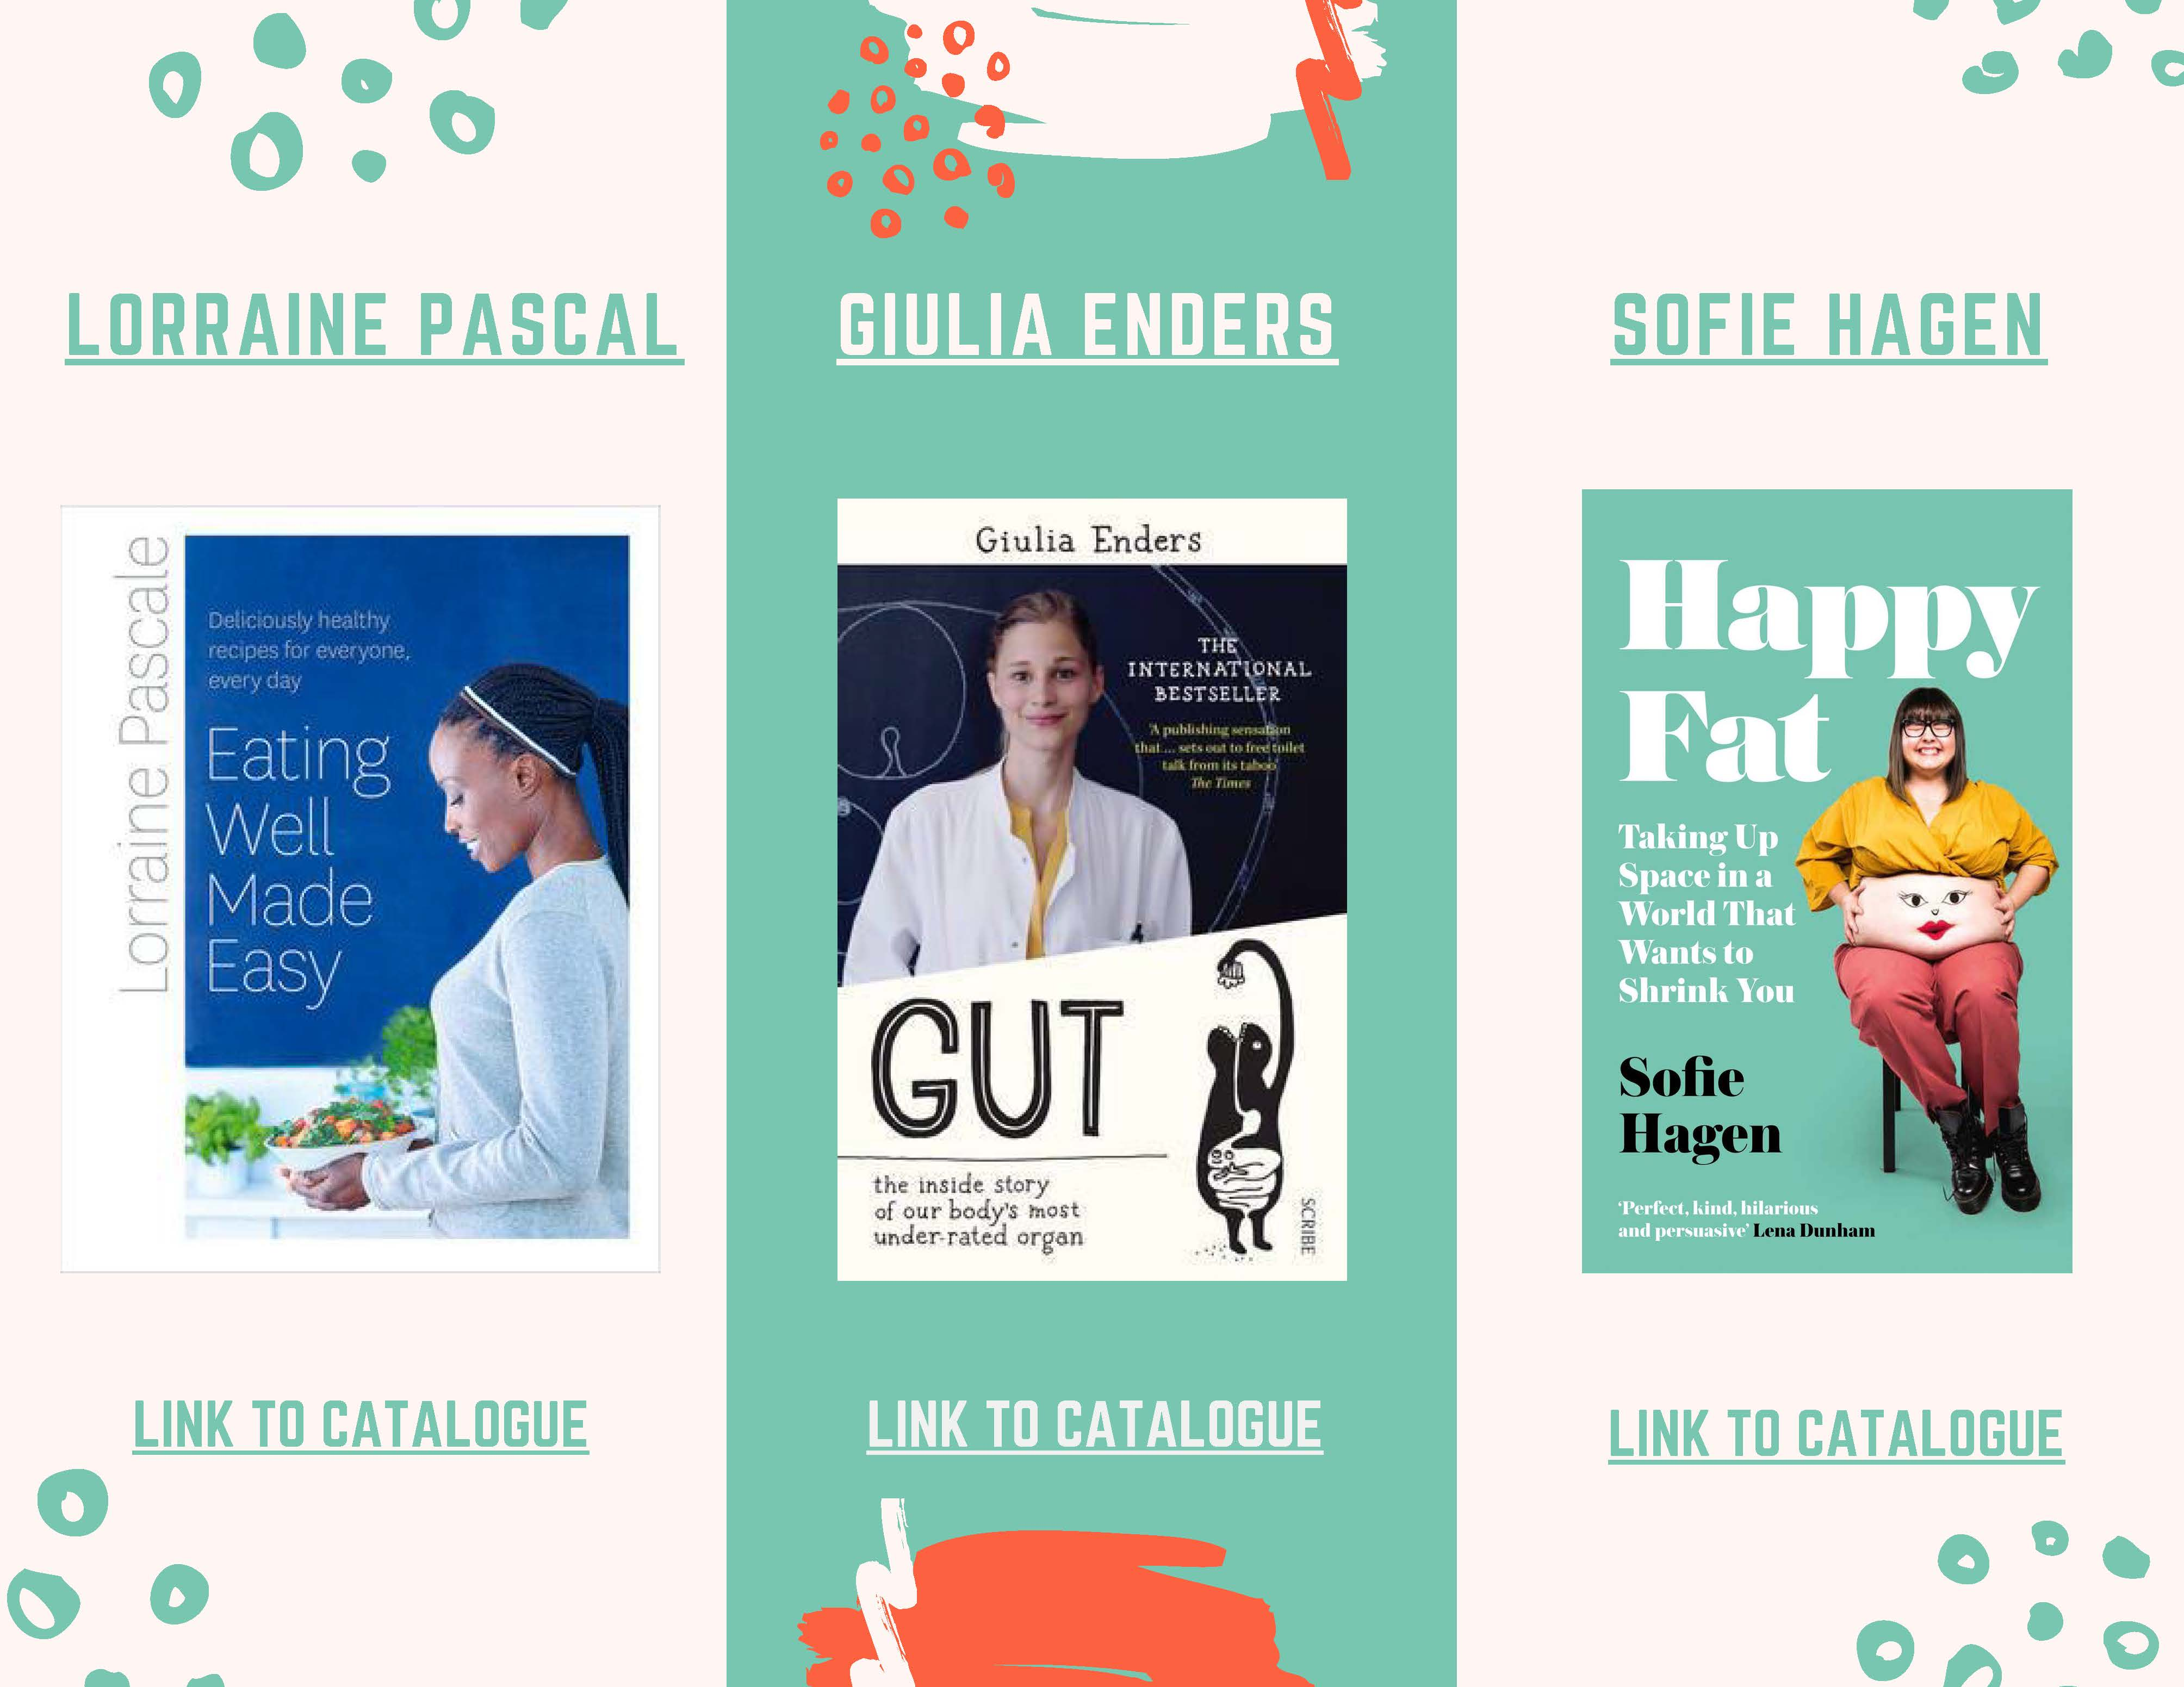 Lorraine Pascal,Giulia Enders and Sofie Hagen Book covers